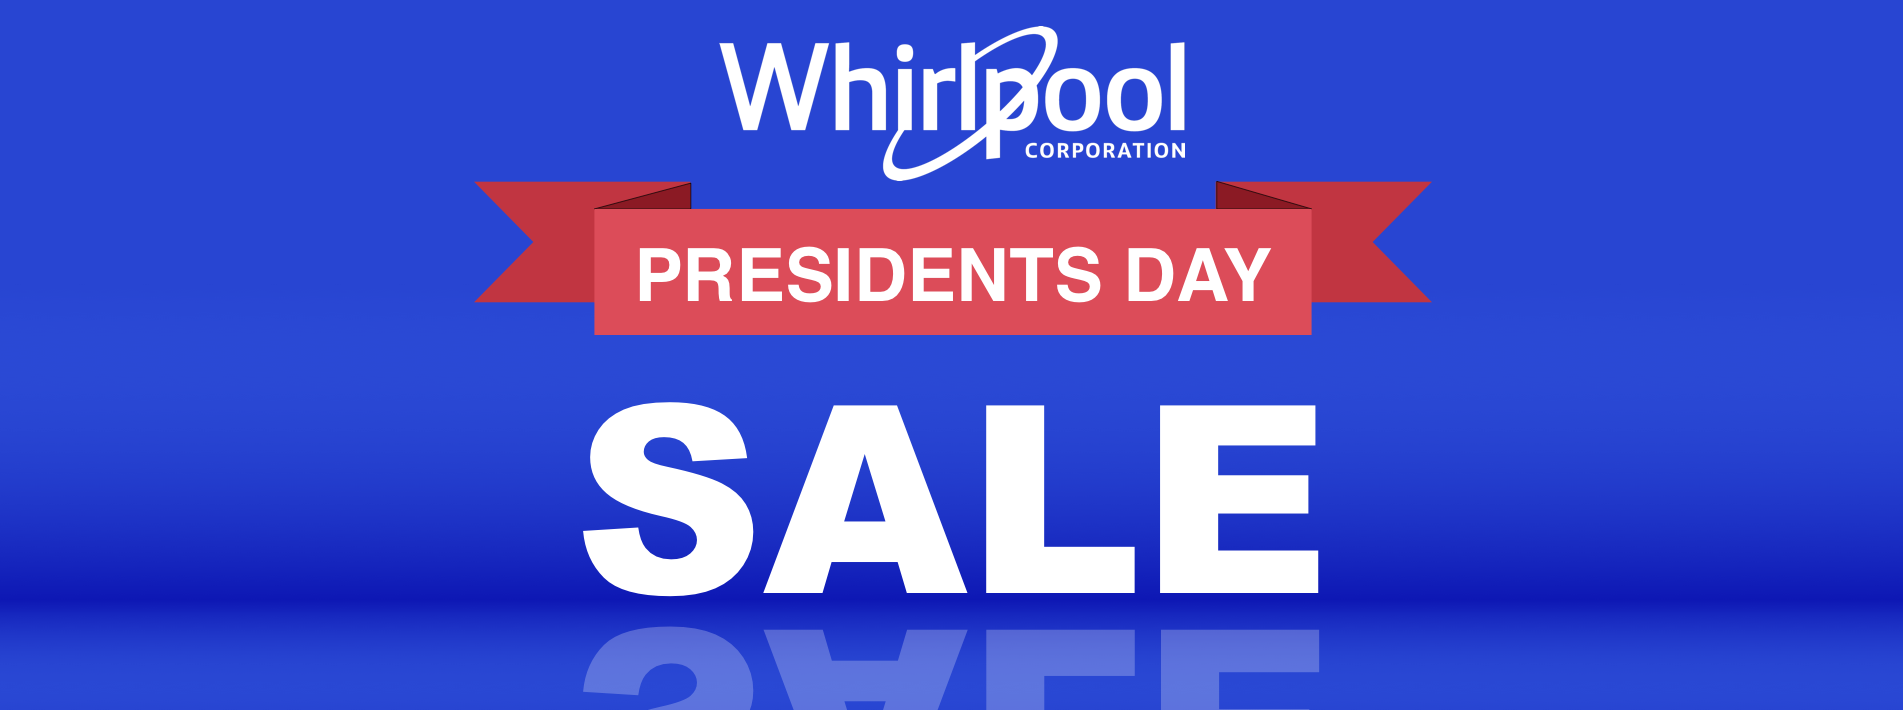 Whirlpool Presidents Day